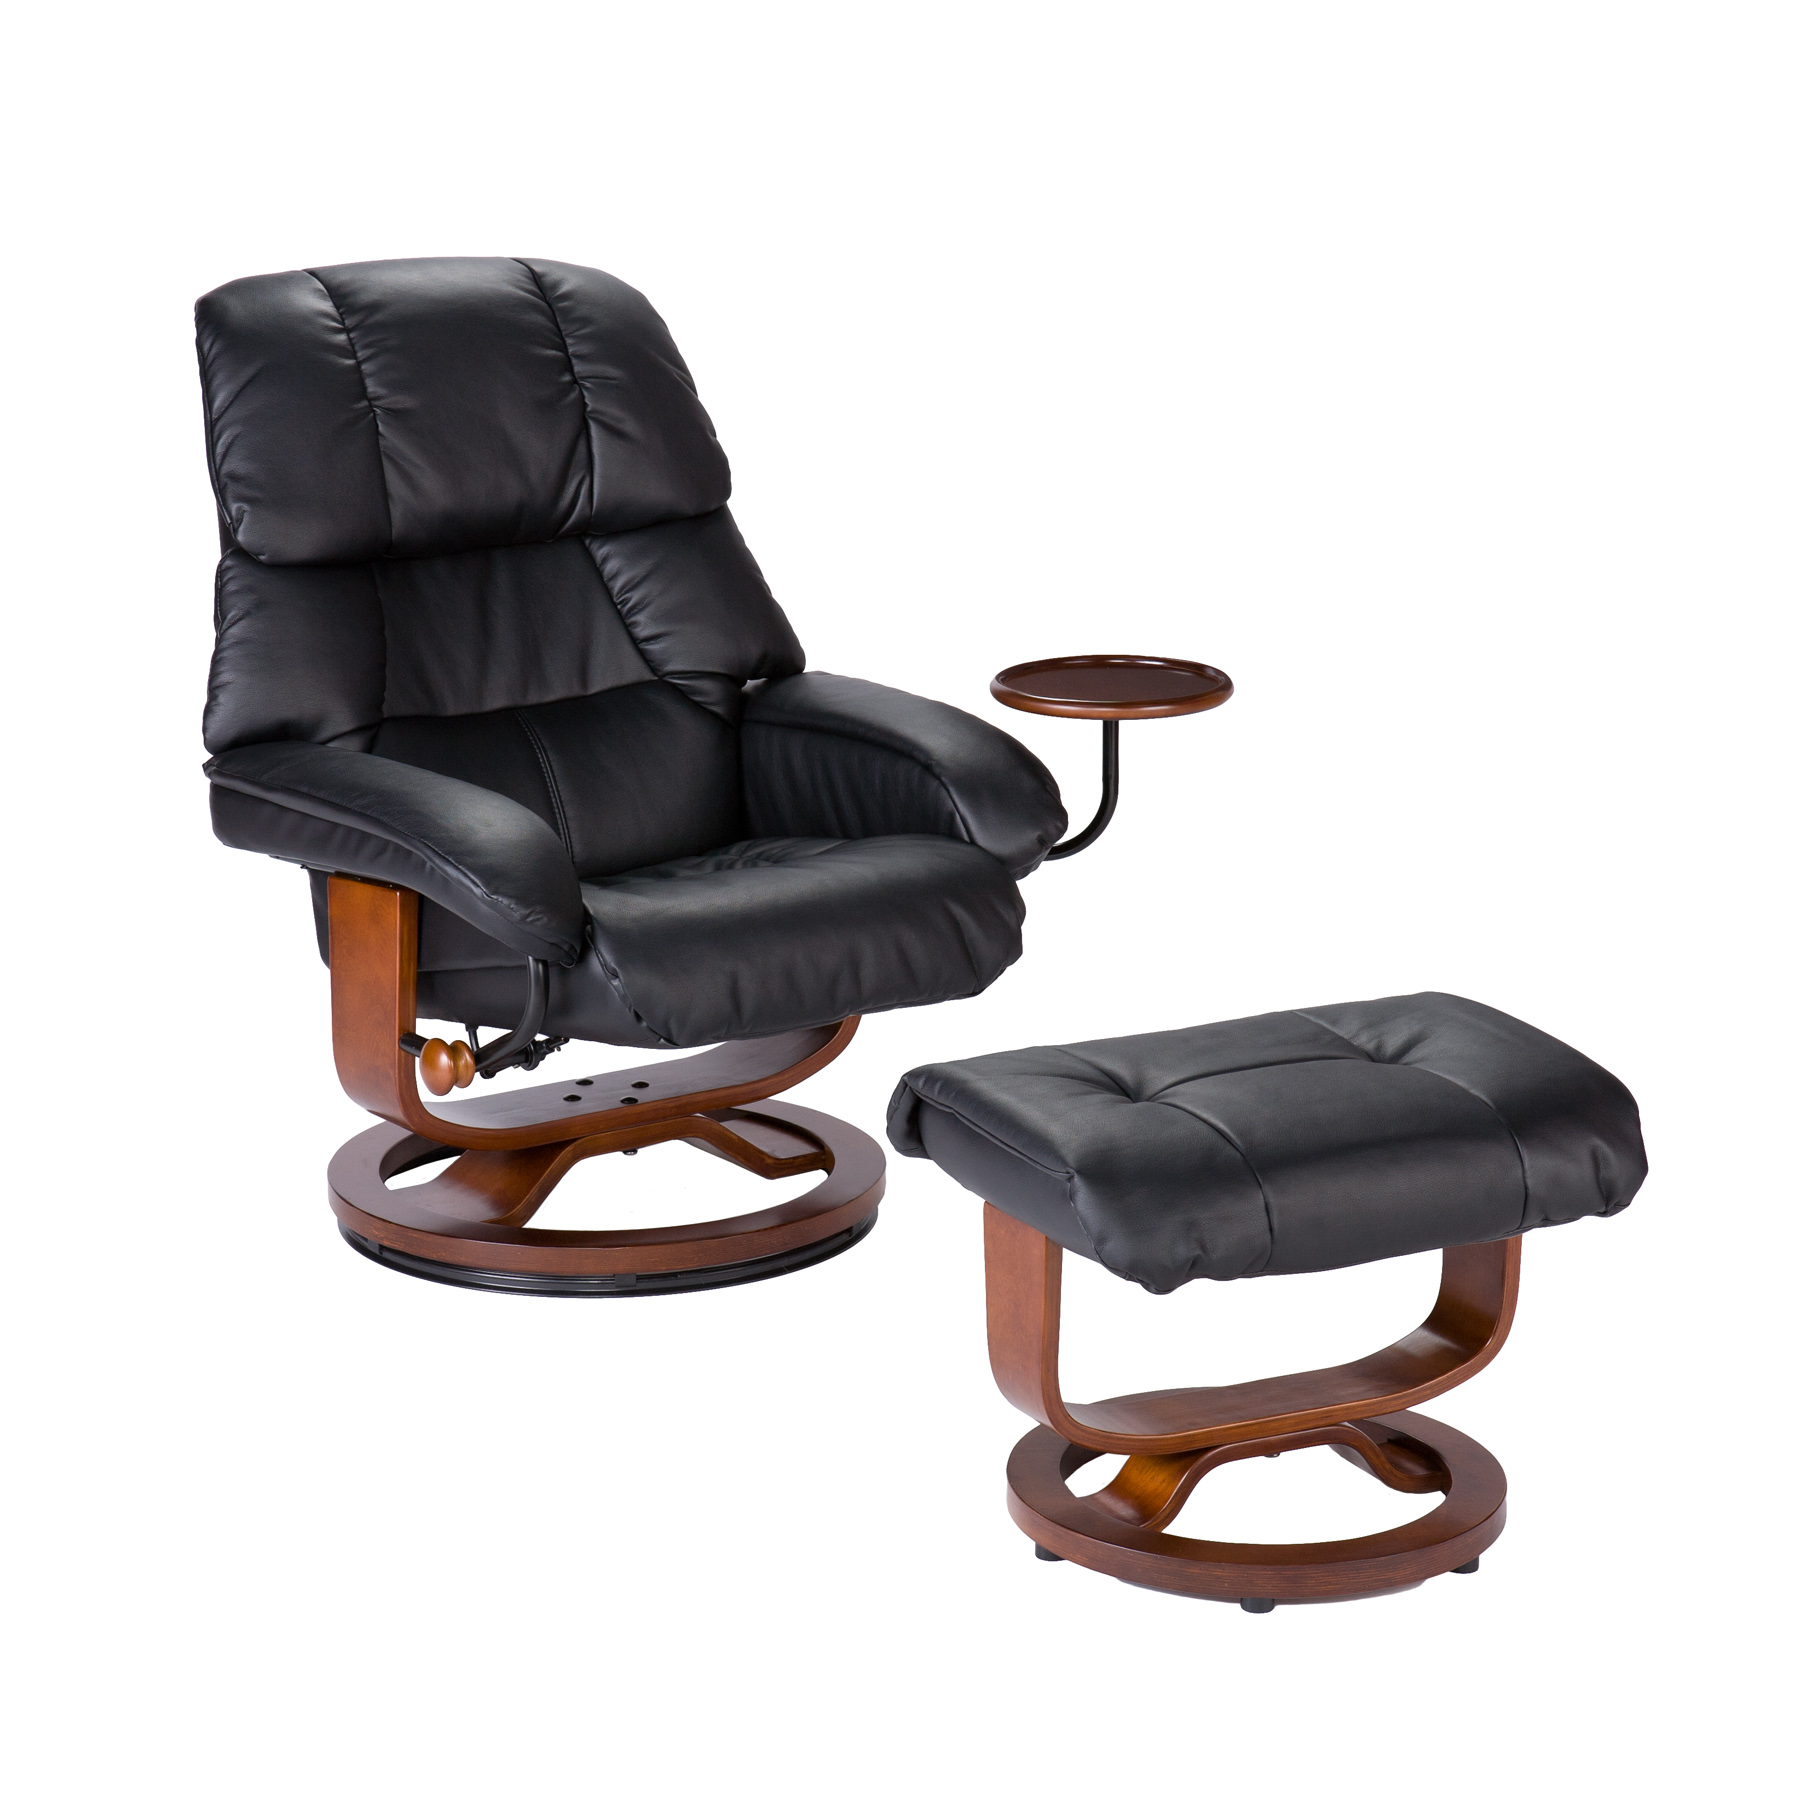 reclining chair with ottoman leather v rocker gaming australia southern enterprises modern recliner and